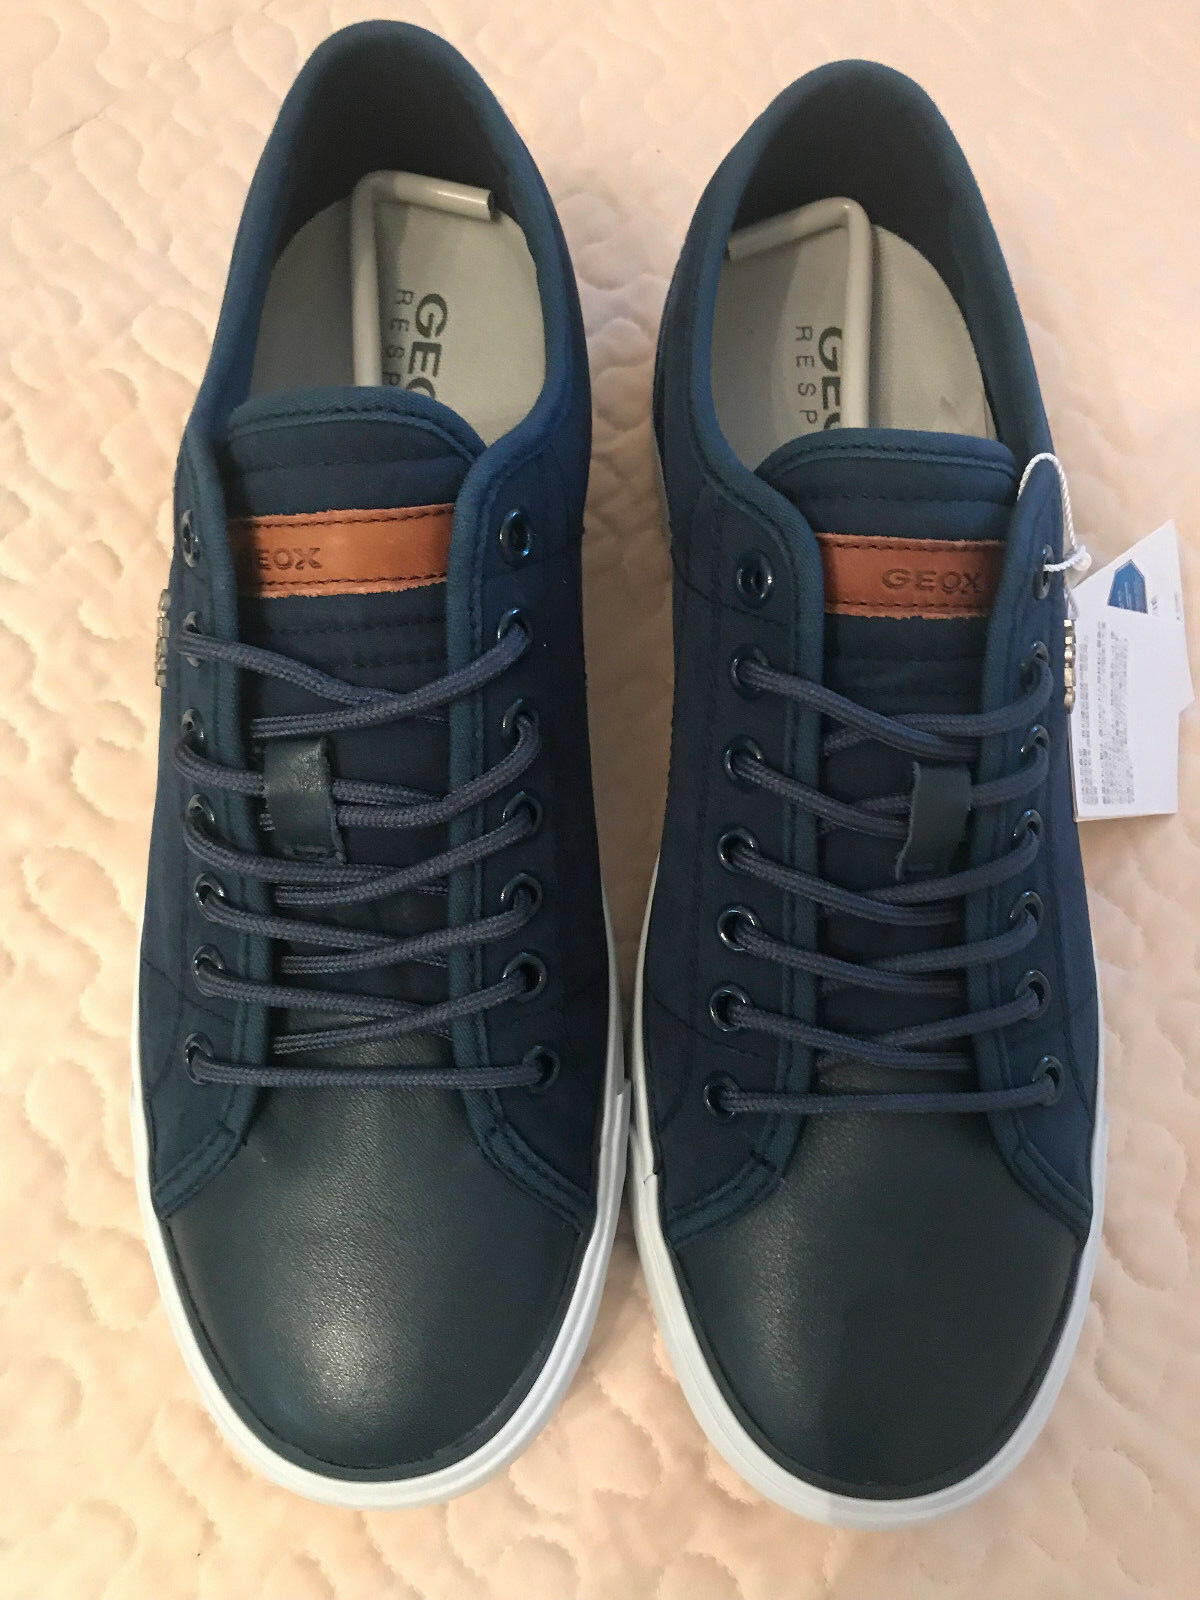 GEOX Respira Homme Bleu Marine Confort Daim Chaussures en cuir, taille 7 (US), new in box